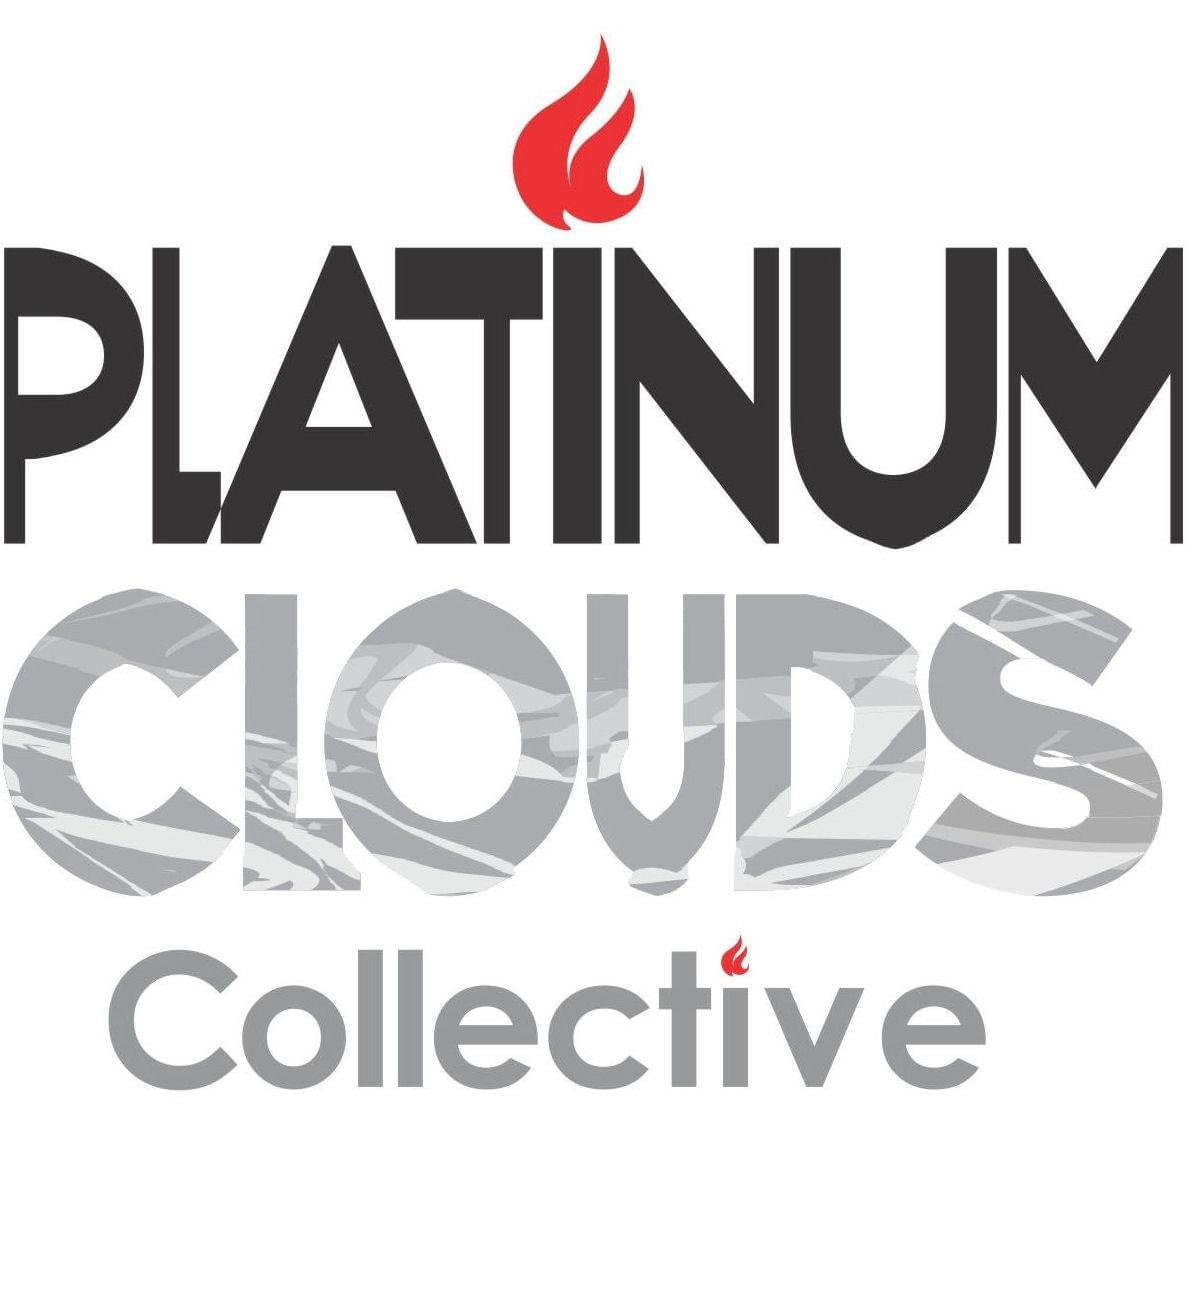 Platinum Clouds Collective